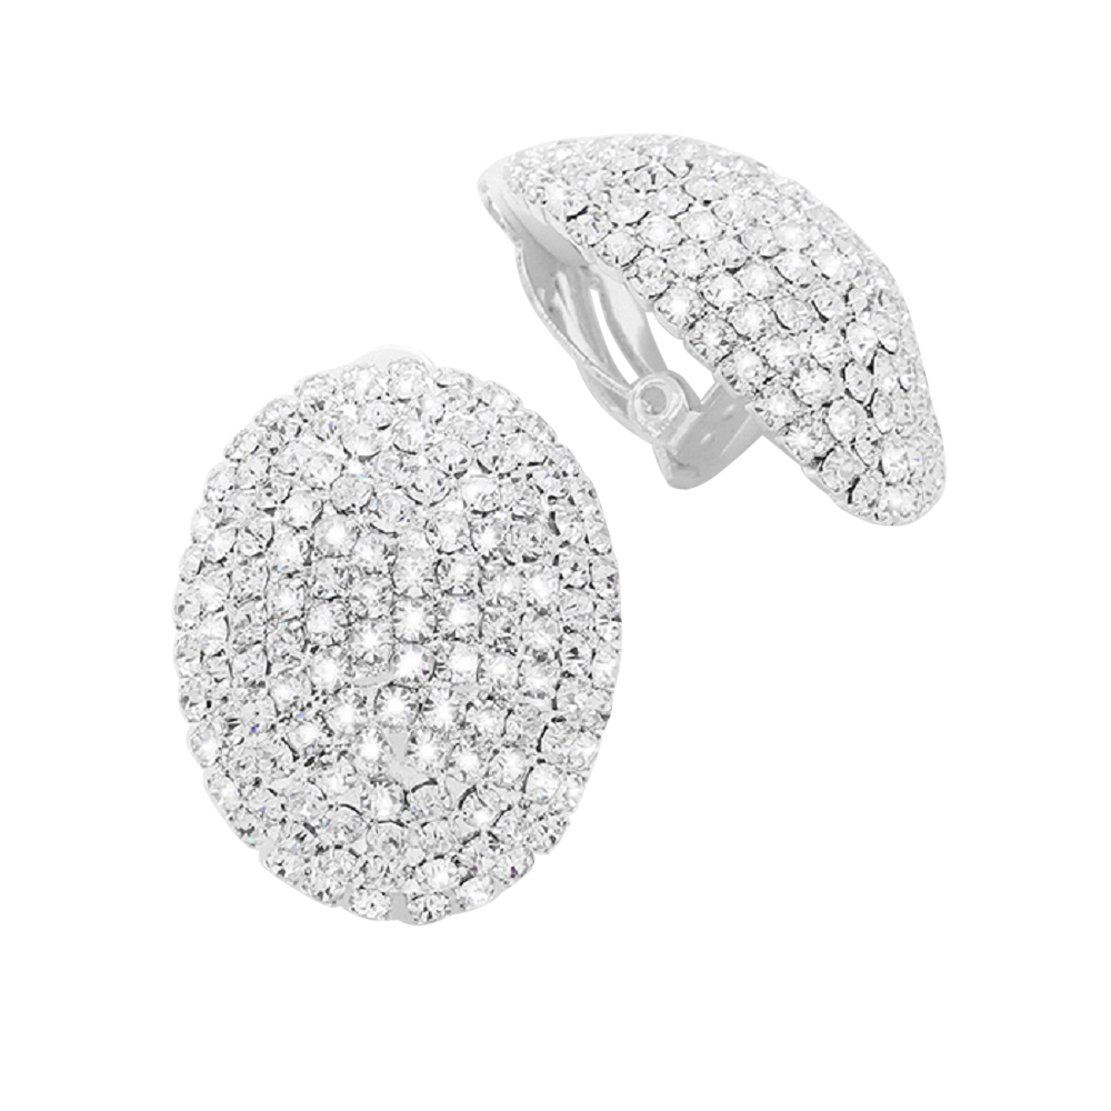 Rosemarie Collections Dazzling Rhinestone Oval Clip On Earrings (Silver Tone)